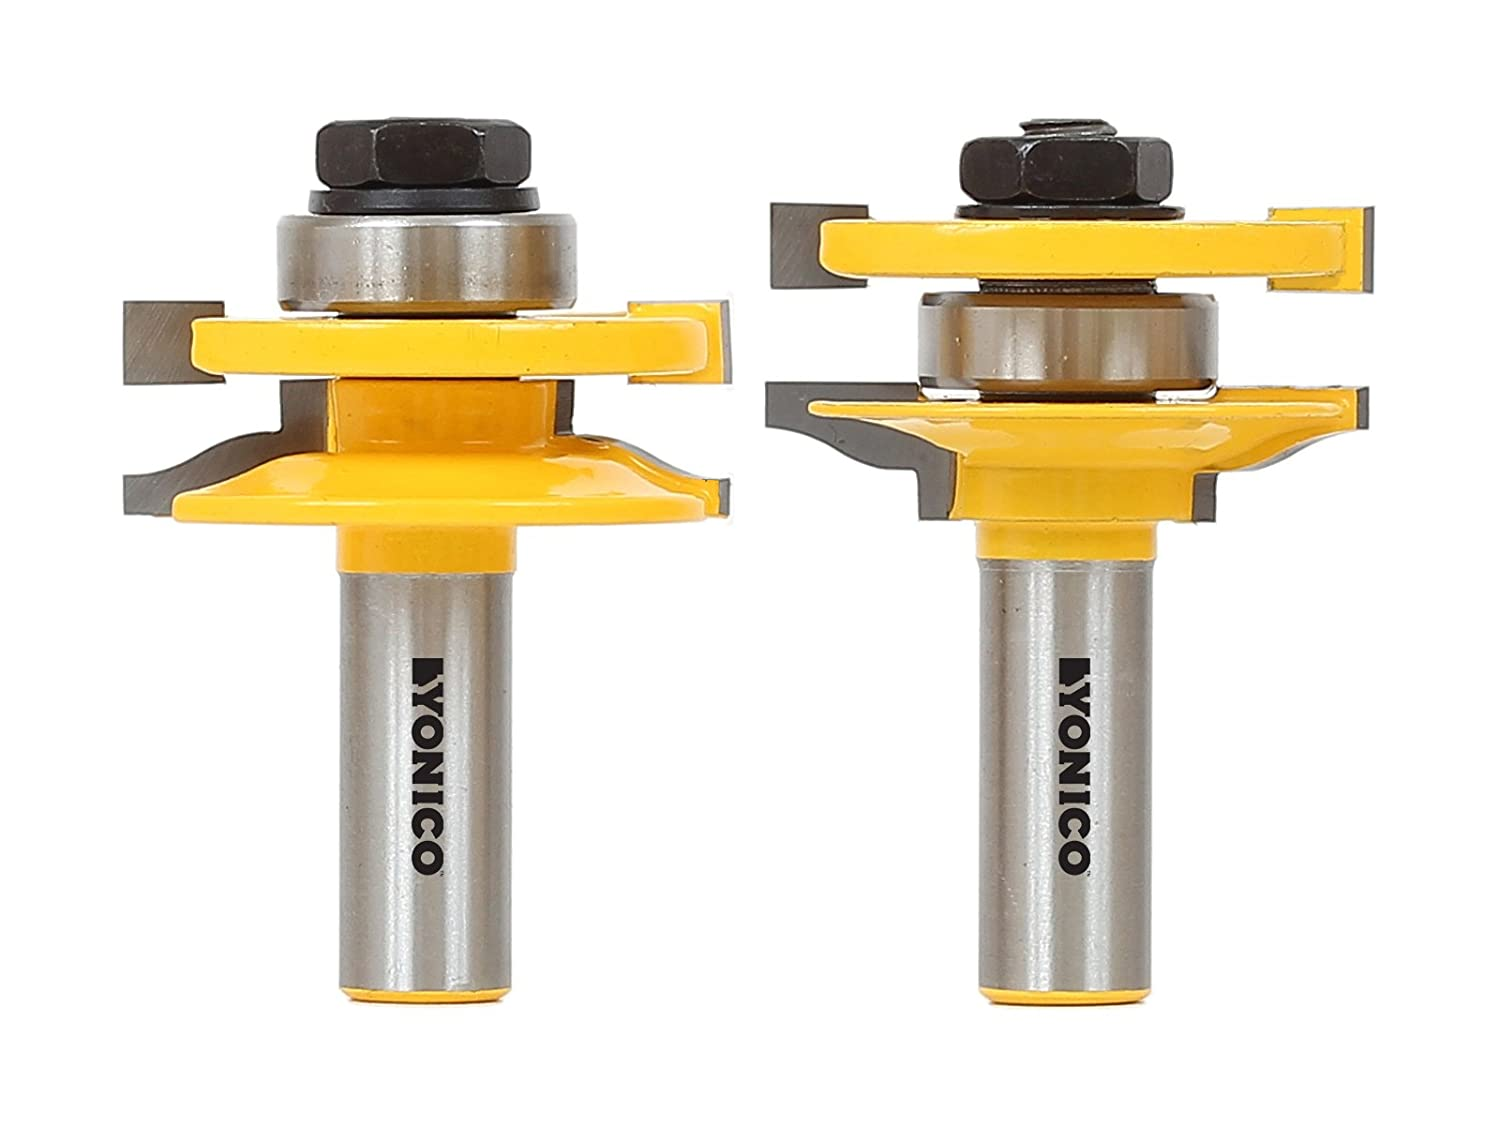 Yonico 12236 Rail and Stile Router Bit Set with Matched 2 Bit Large Ogee 1/2-Inch Shank